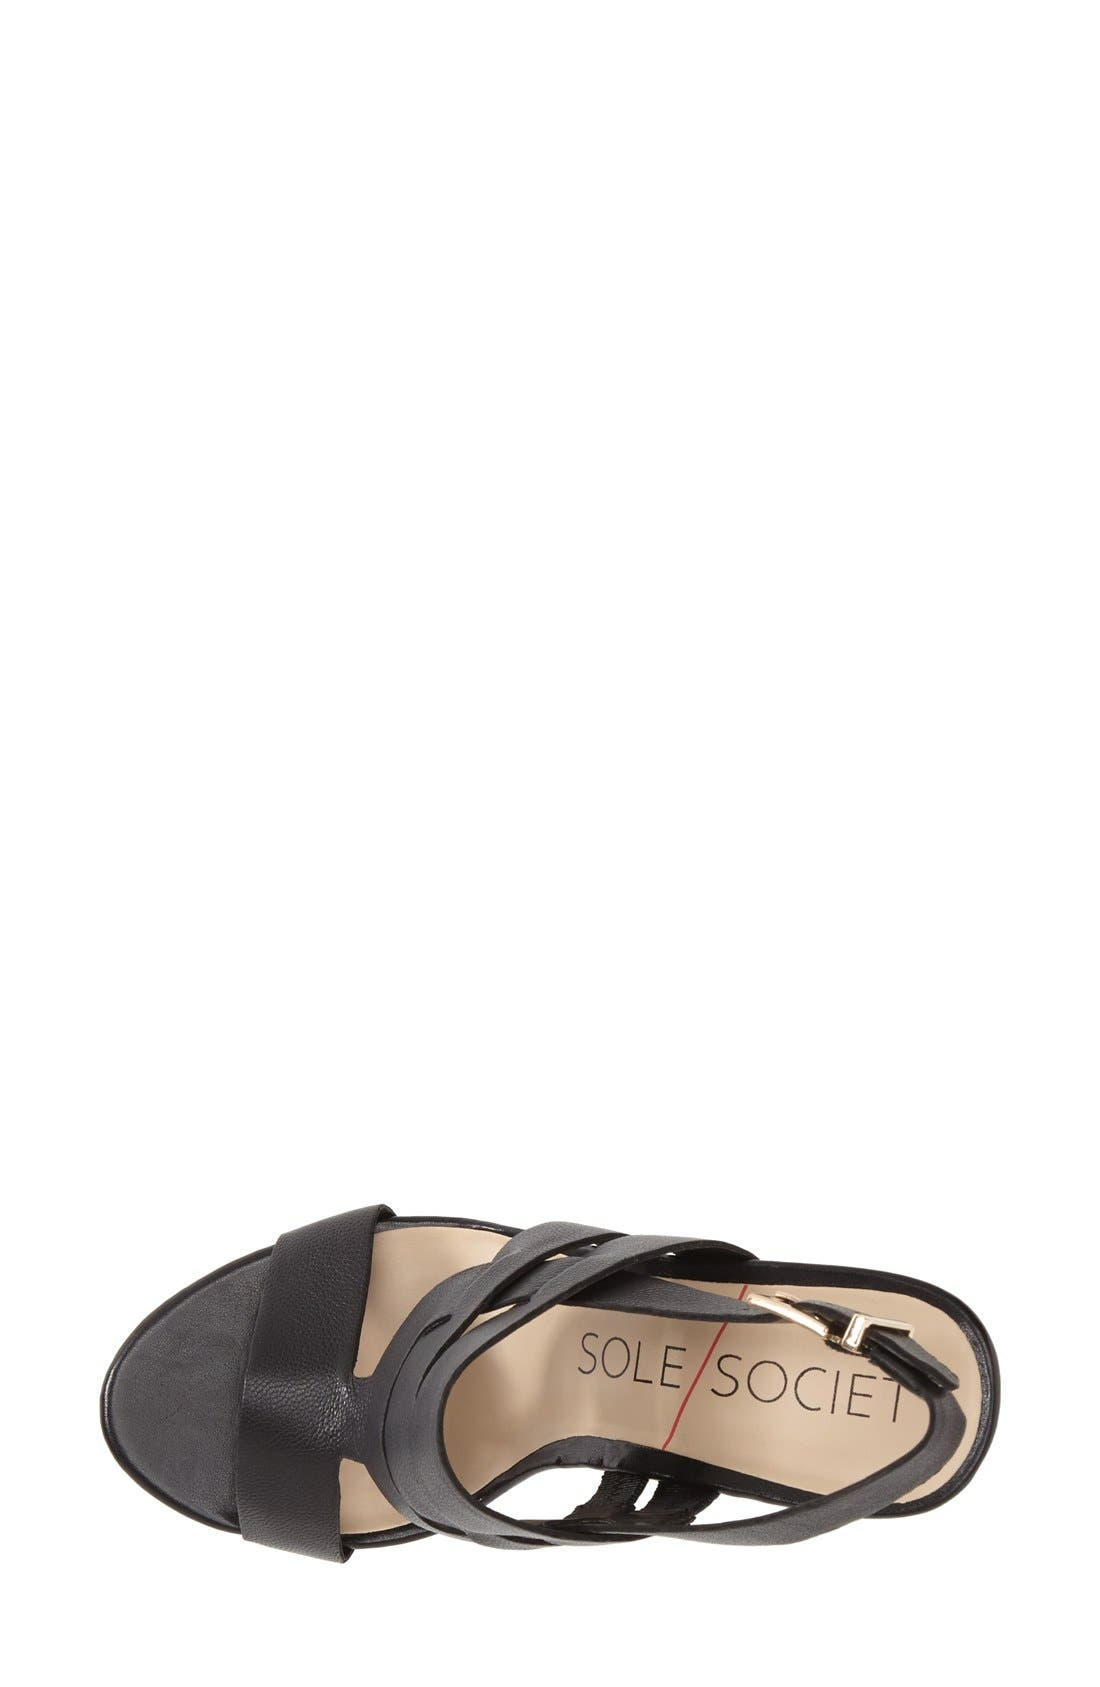 Alternate Image 3  - Sole Society 'Jenny' Slingback Wedge Sandal (Women)